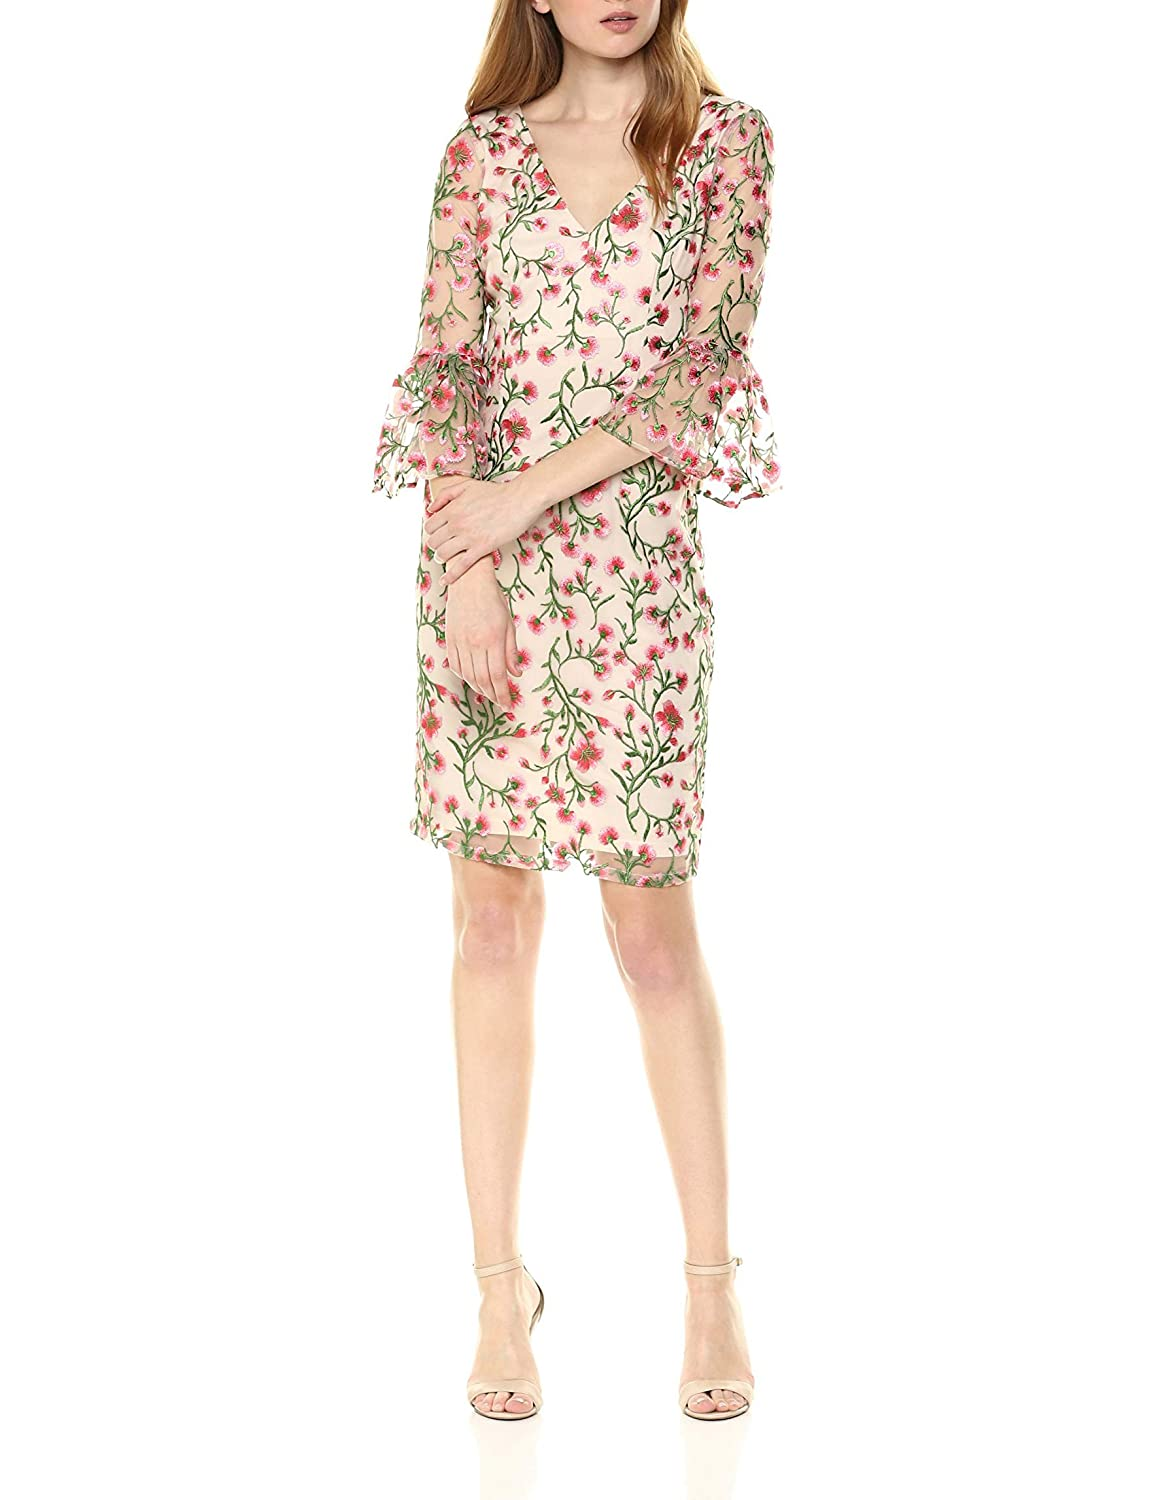 d4ab94205196 Adrianna Papell Women's Floral Vines Bell Sleeve Dress at Amazon Women's  Clothing store: